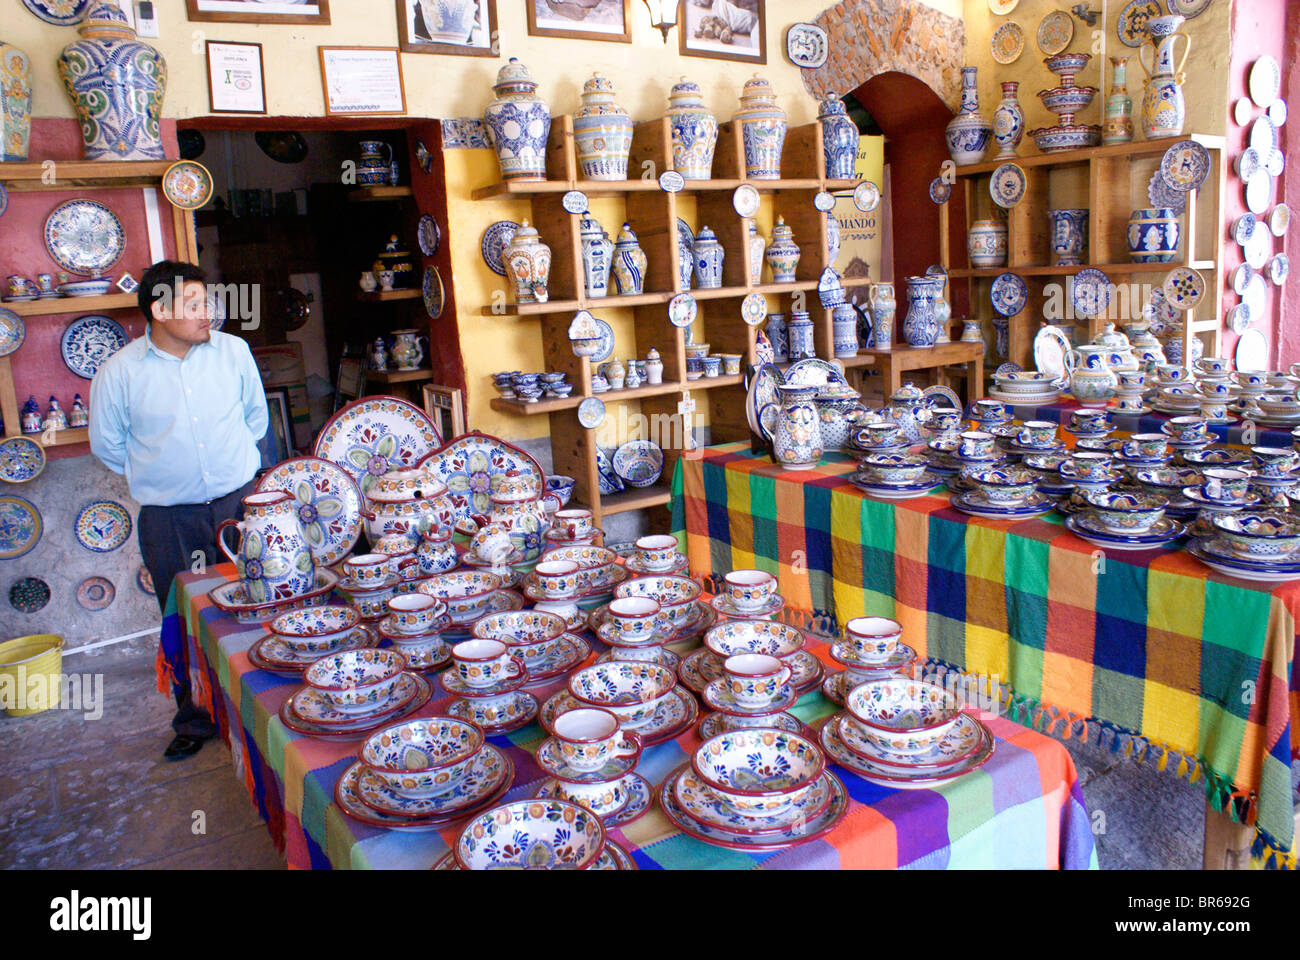 Clerk in a shop selling colorful Talavera pottery in the city of Puebla, Mexico - Stock Image